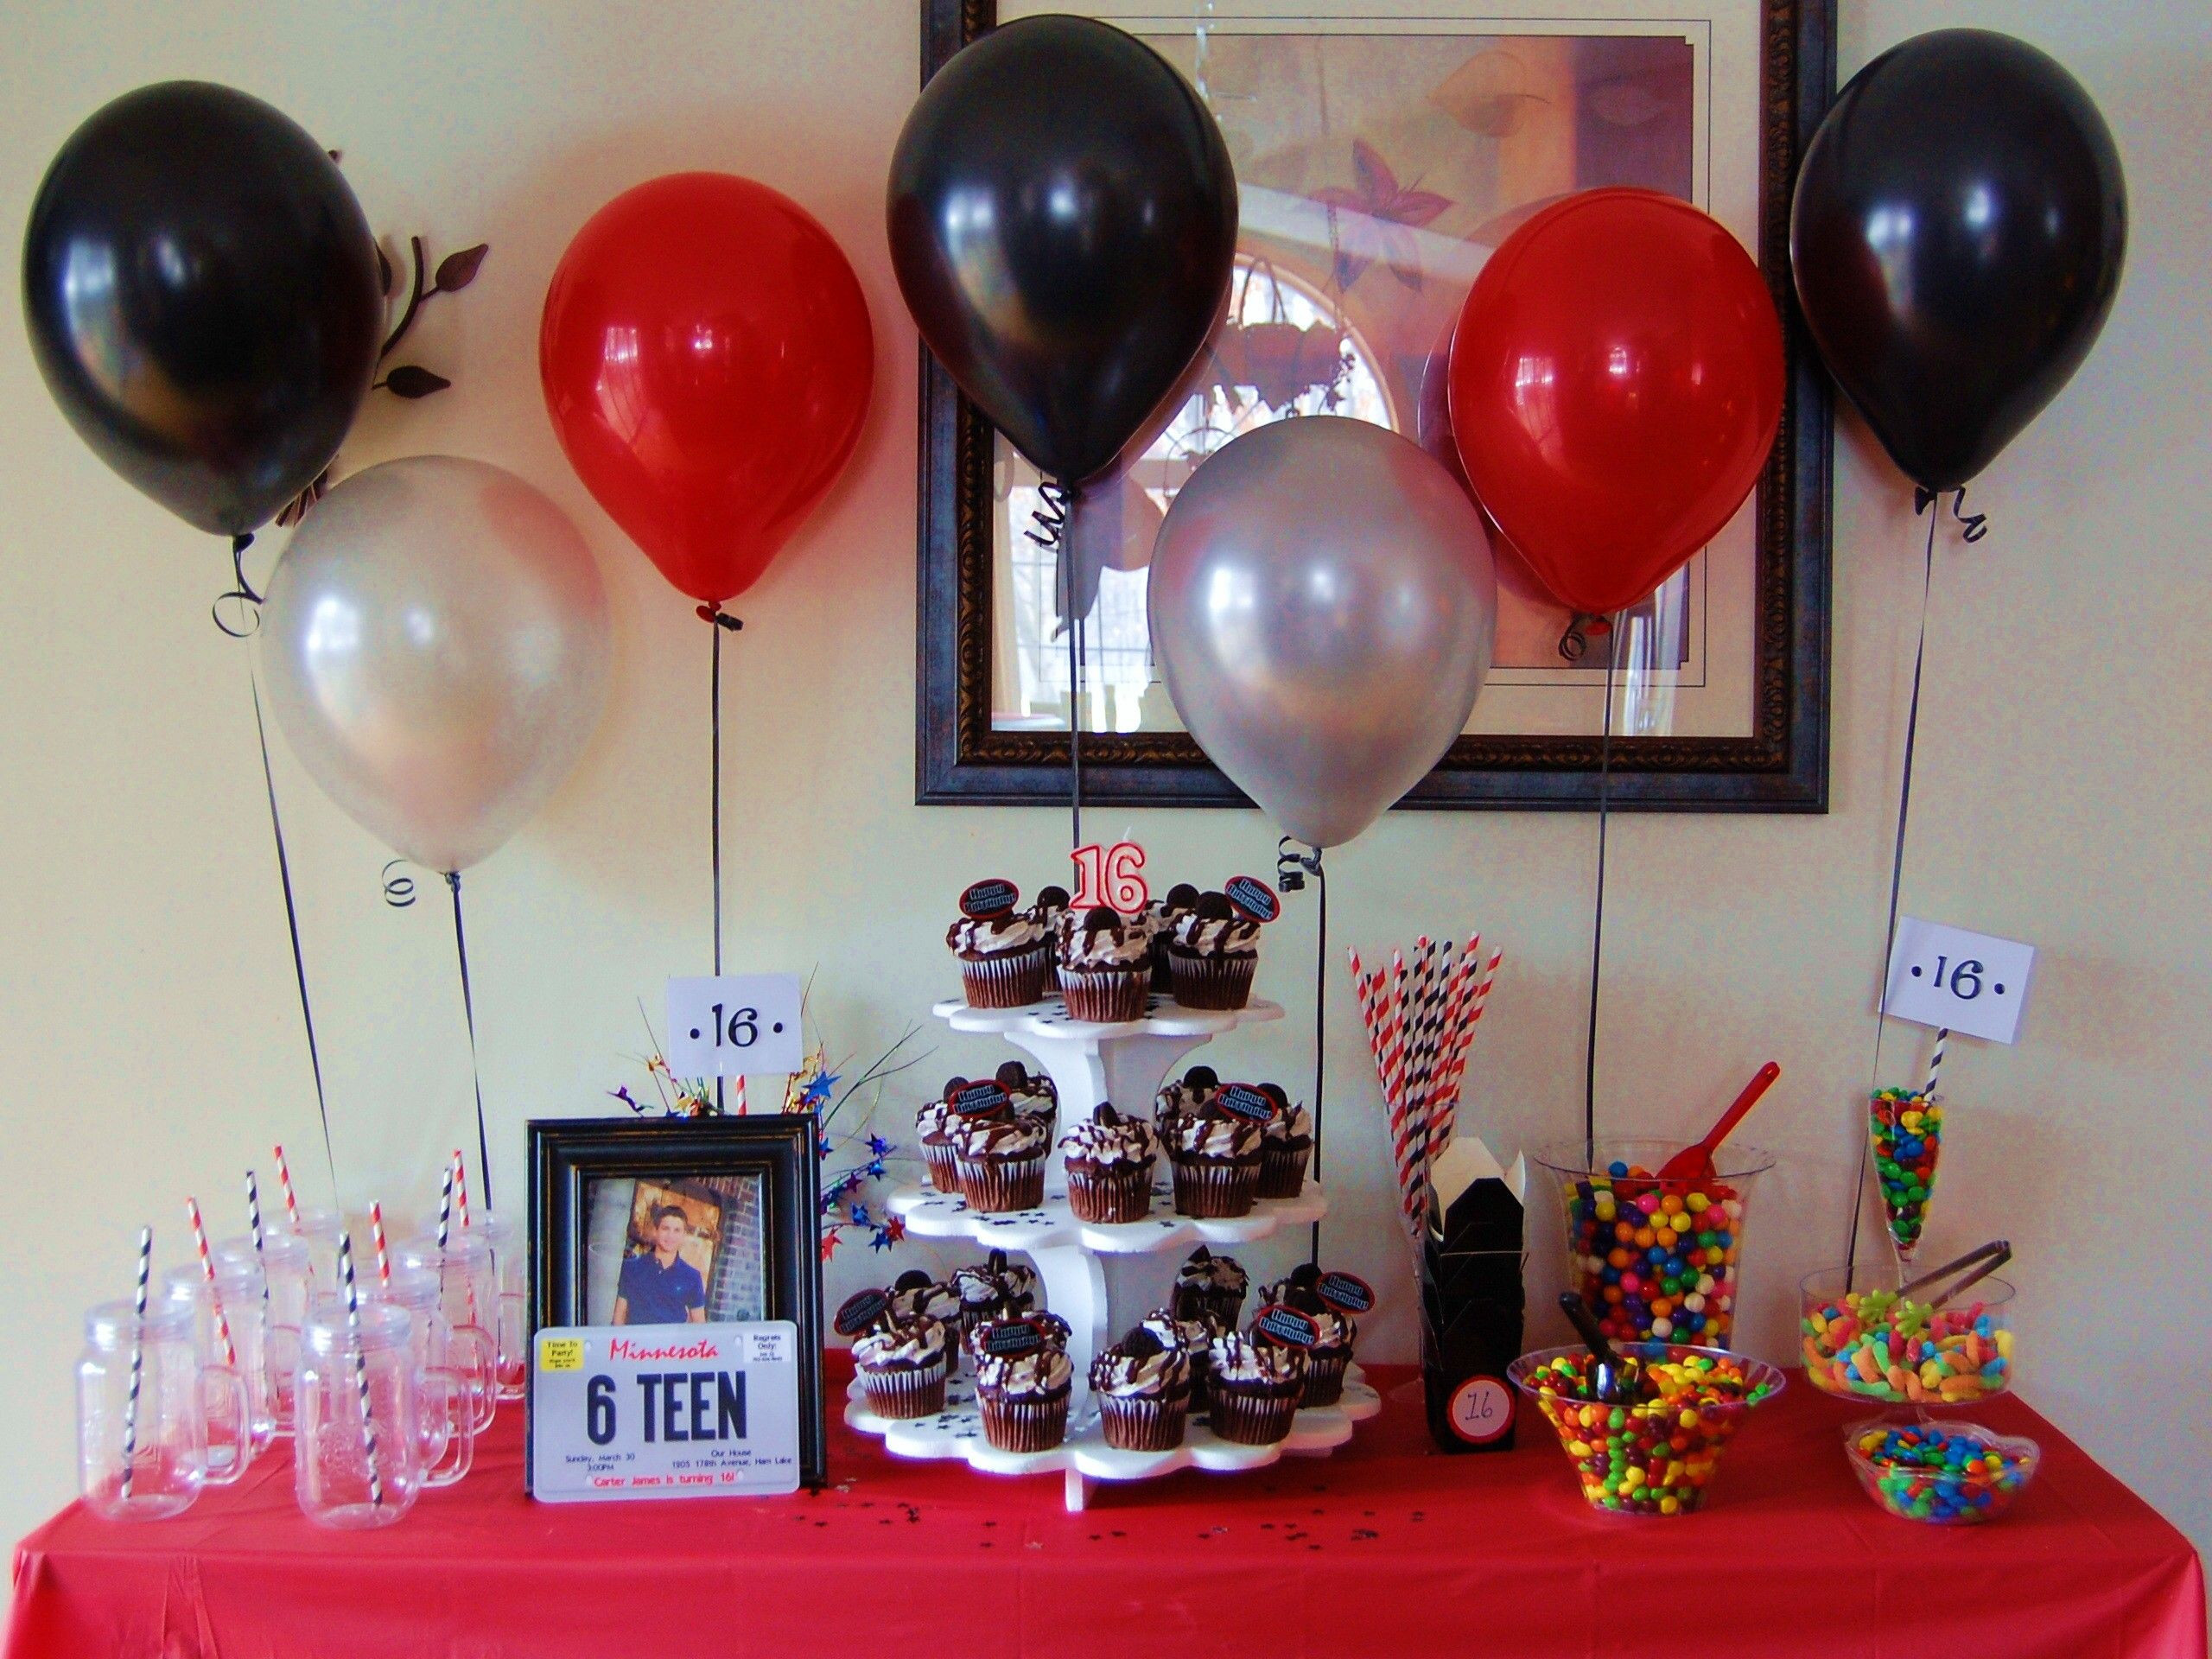 Best ideas about 16th Birthday Party . Save or Pin SIXTEENTH BIRTHDAY for a GUY Sweet sixteen party ideas Now.